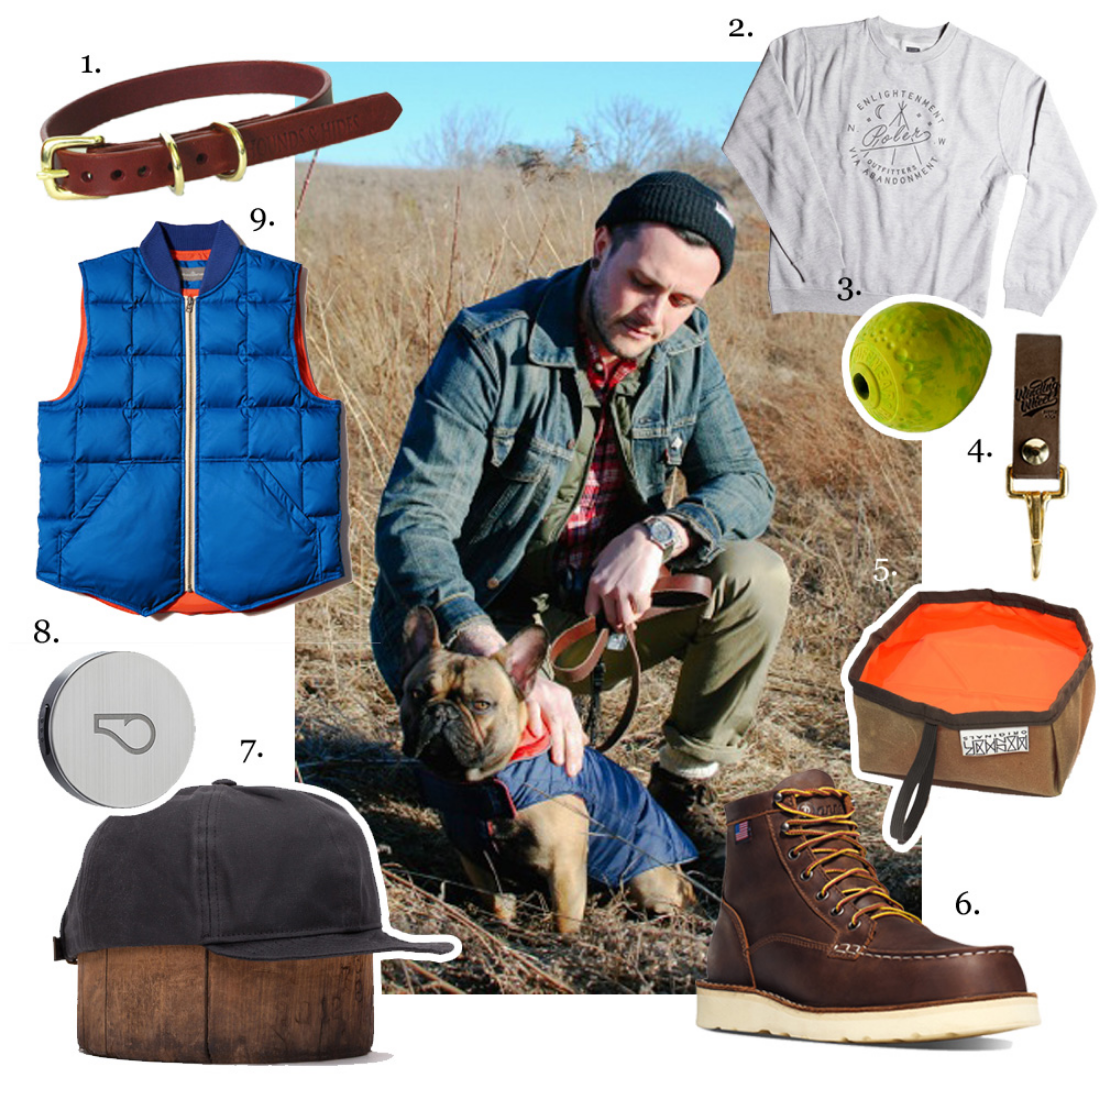 """1. Hounds & Hides,   The New Classic Skinny Burgundy Collar   2. Poler,   Enlightenment Crew Neck   3. Ruffwear,   Turnup Toy   4. Winding Wheel Supply,  The Flagship Key Clip   5. Mosher Originals,   Park Bowl   6 . D anner,   Bull Run Moc Toe 6"""" Brown Boots  7. Knickerbocker Mfg,   Engineer Cap II   8. Whistle,  Activity Monitor   9.L.L. Bean,  Signature Quilted Down Vest   (Allan and Frankie photo by   City Dog Living  )"""